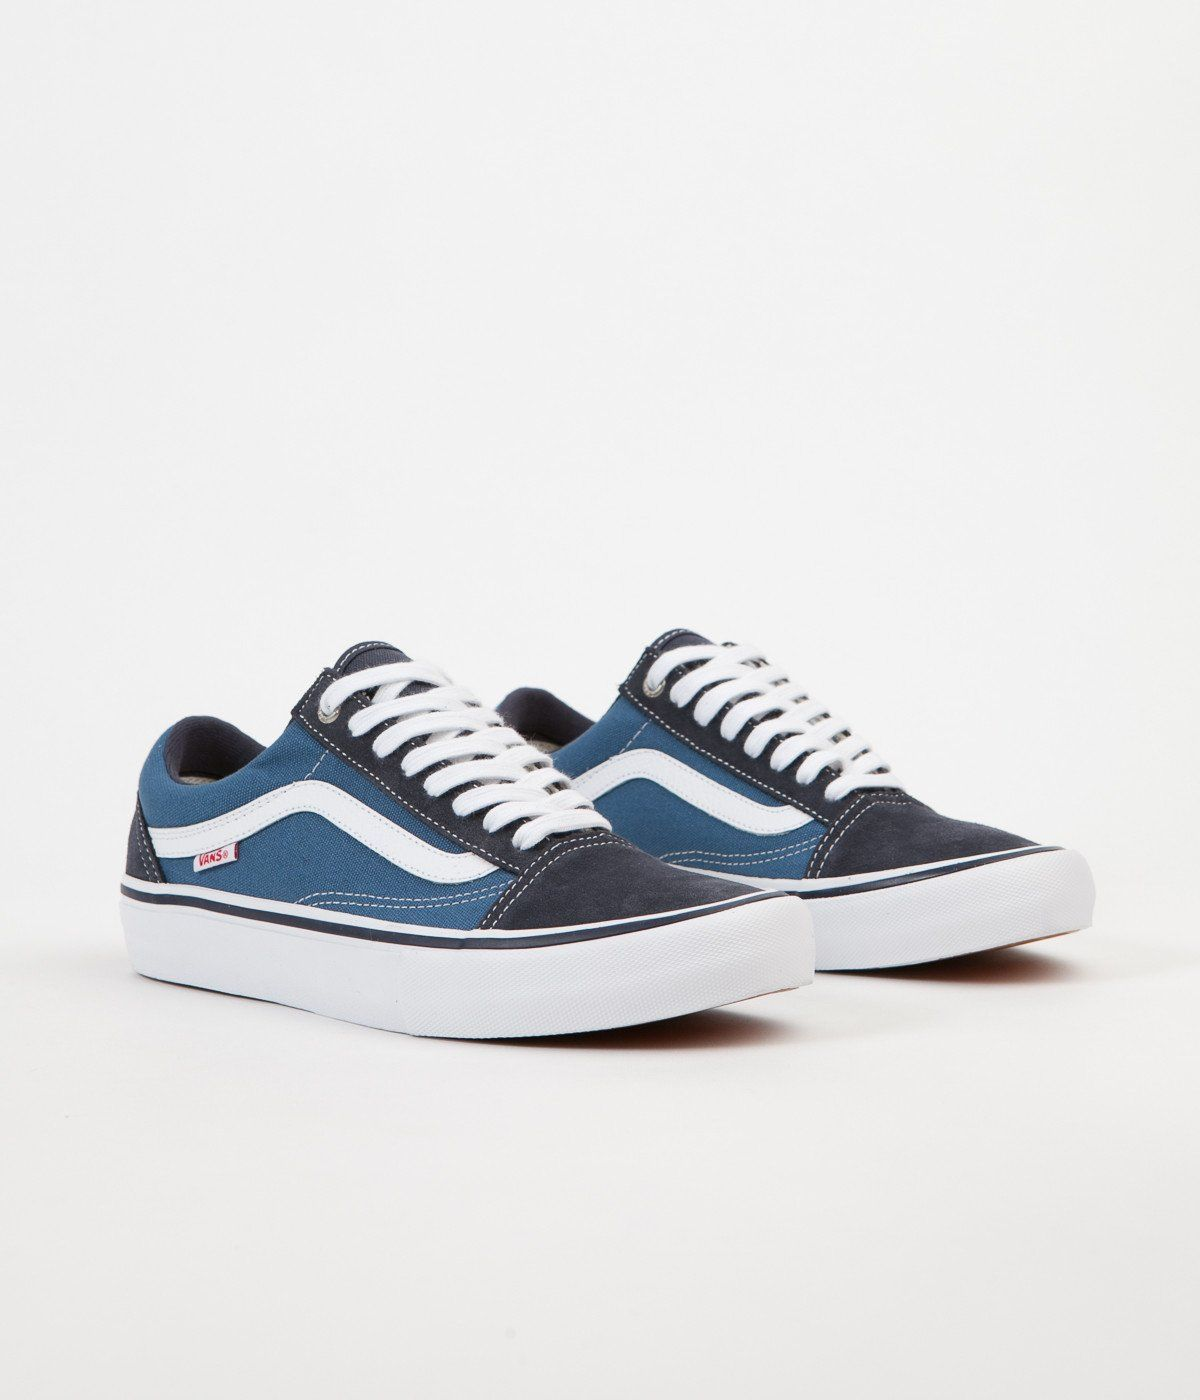 Vans Old Skool Pro Shoes Navy STV Navy White | Vans